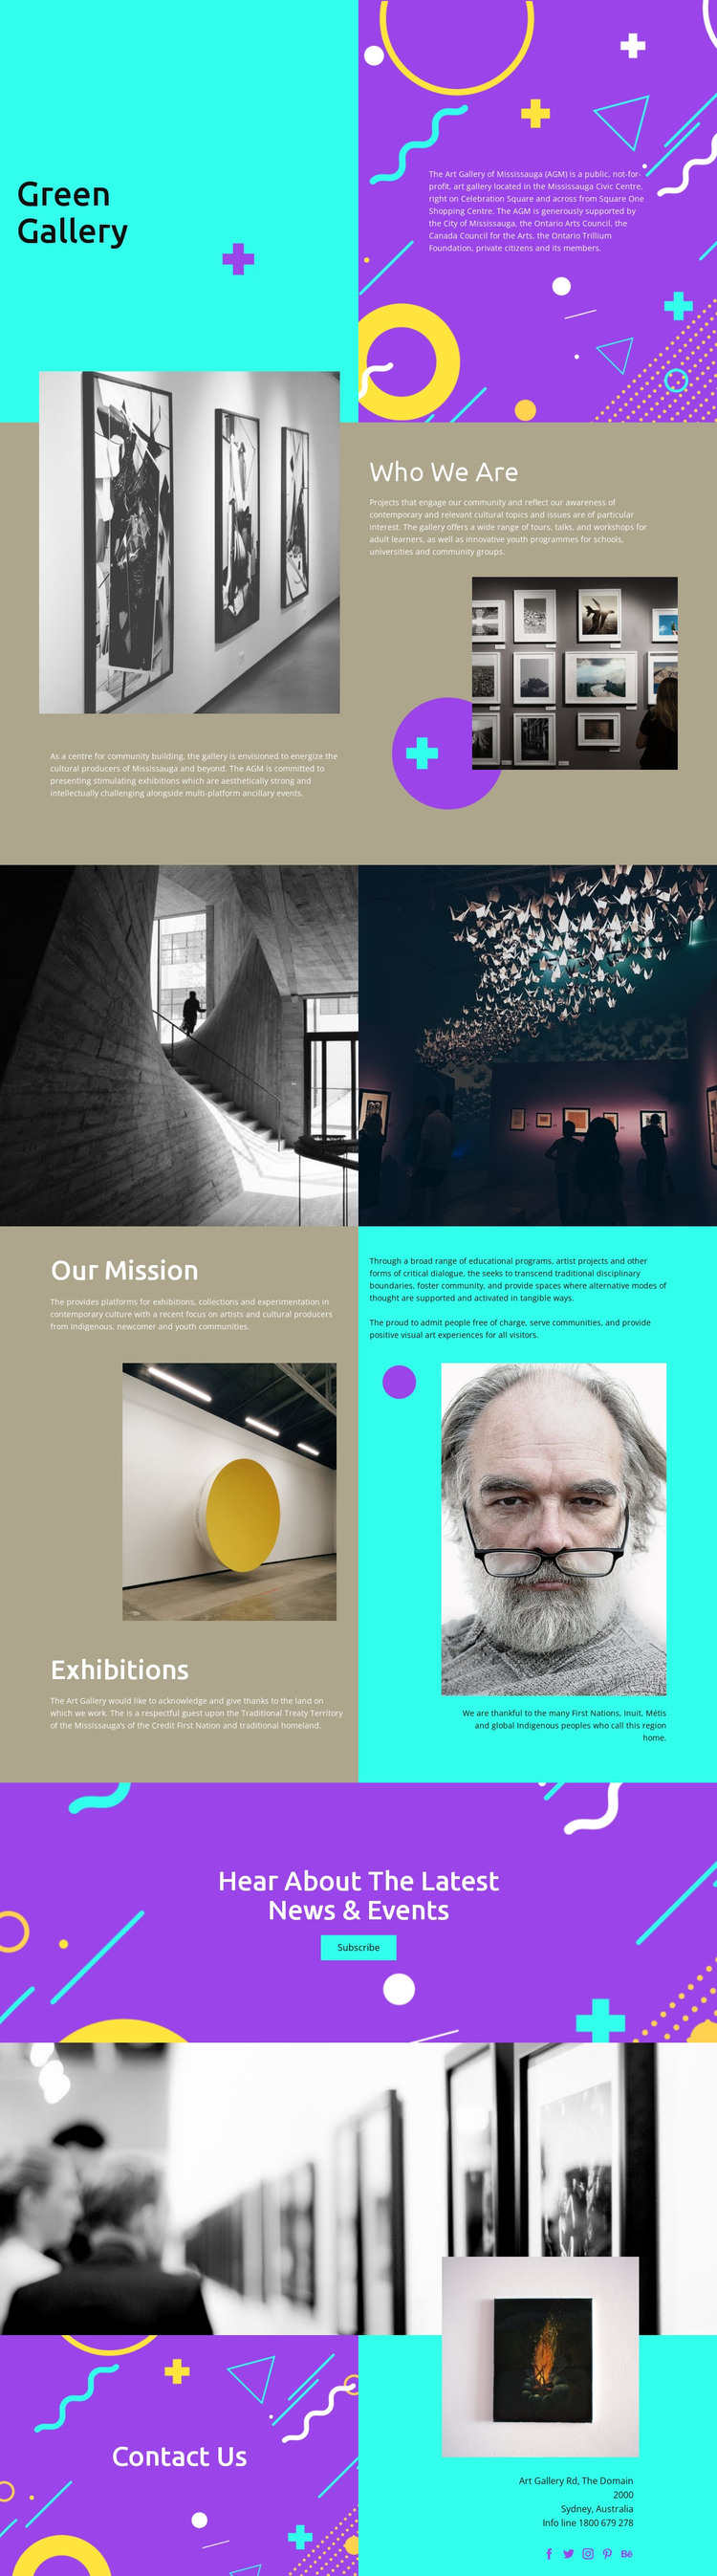 Gallery of fashion photographers HTML Template